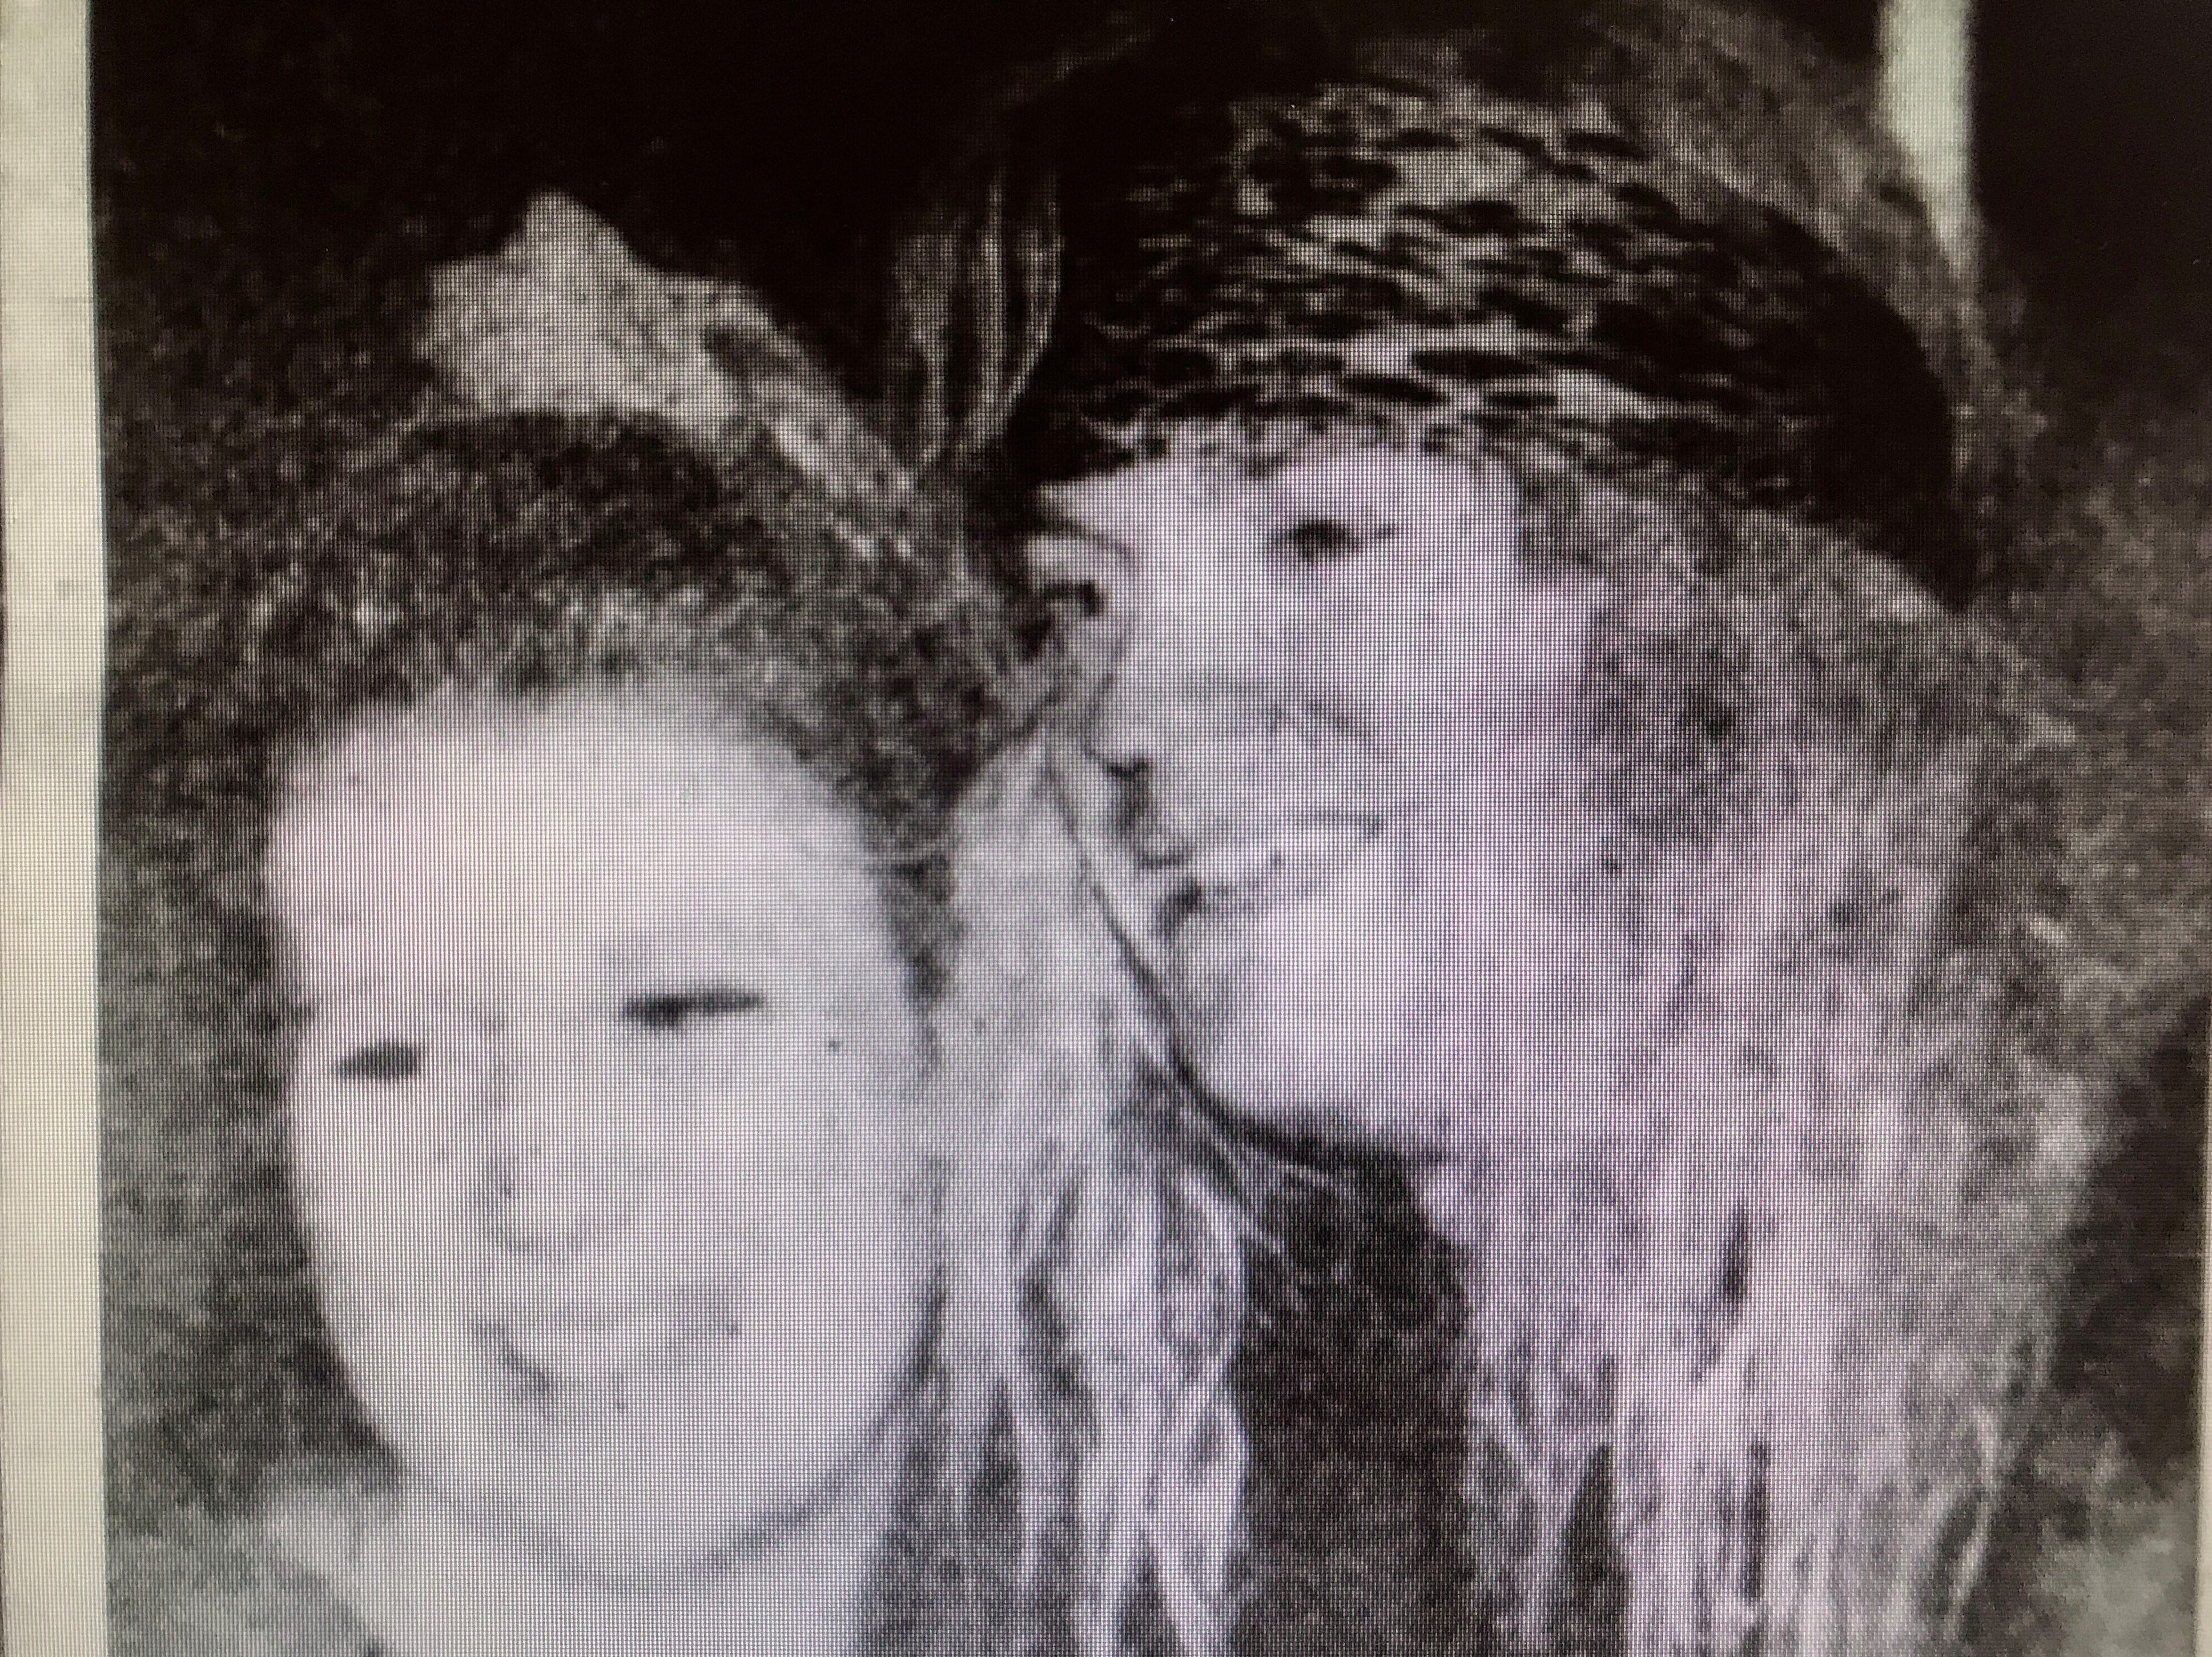 Denise Ulman of New London poses with Bret Michaels in 1993 at a Poison rehearsal party at Brown County Veterans Memorial Arena for the band's Native Tongue World Tour launch.